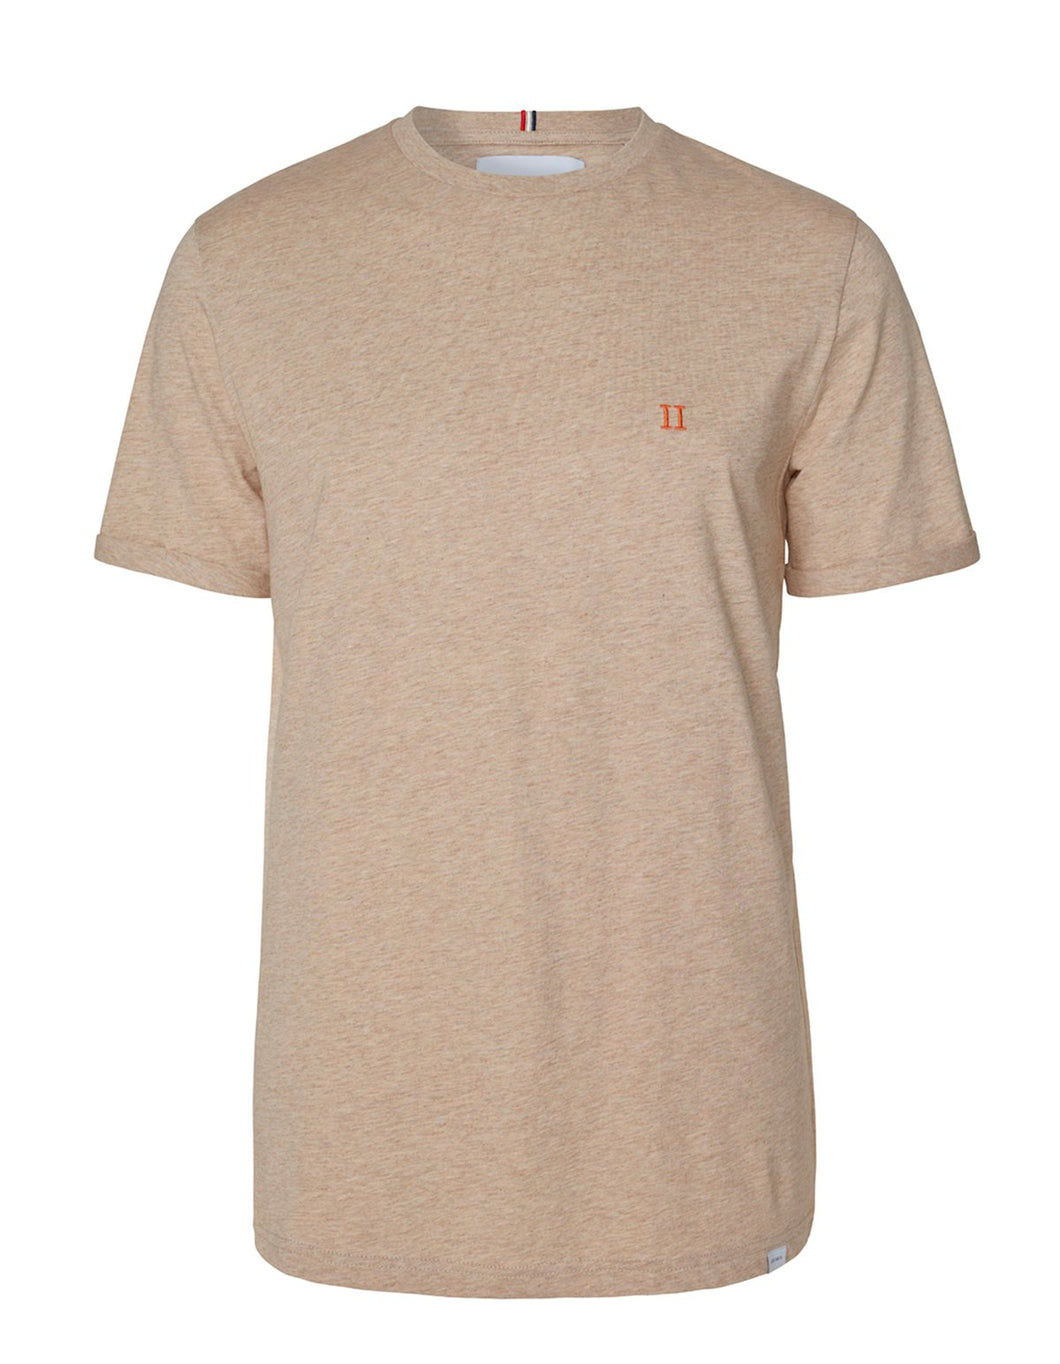 Les Deux Nørregaard T-Shirt Light Brown Melange/Orange